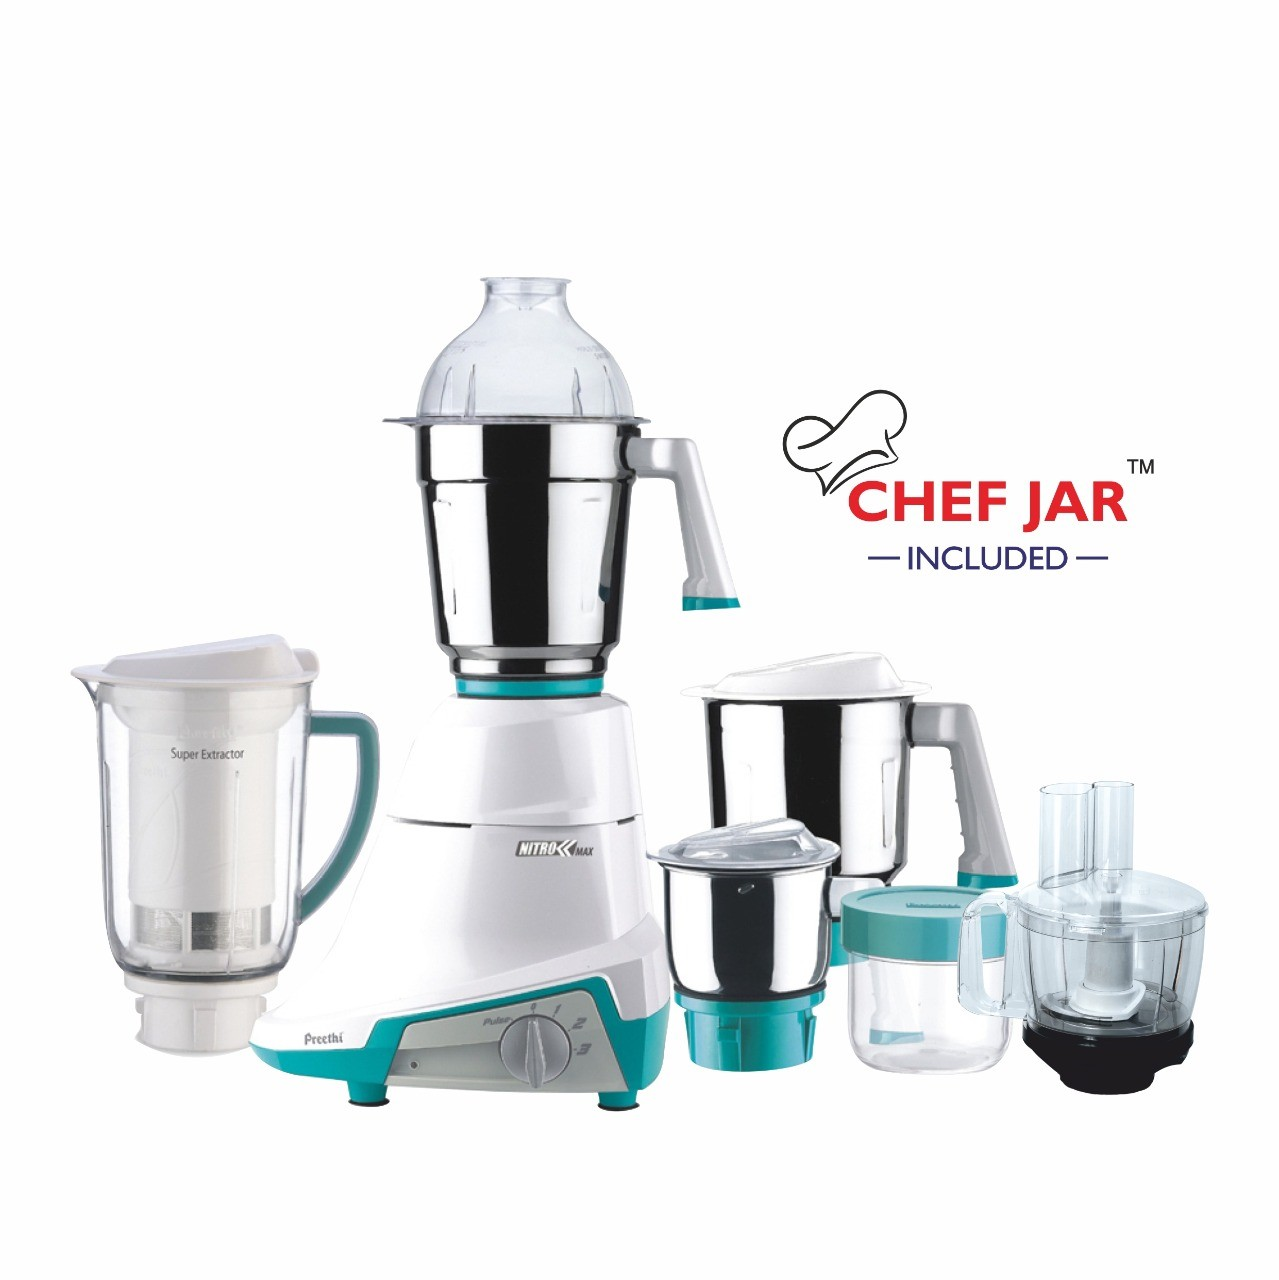 preethi-nitro-plus-chef-jar-juice-extractor-110v